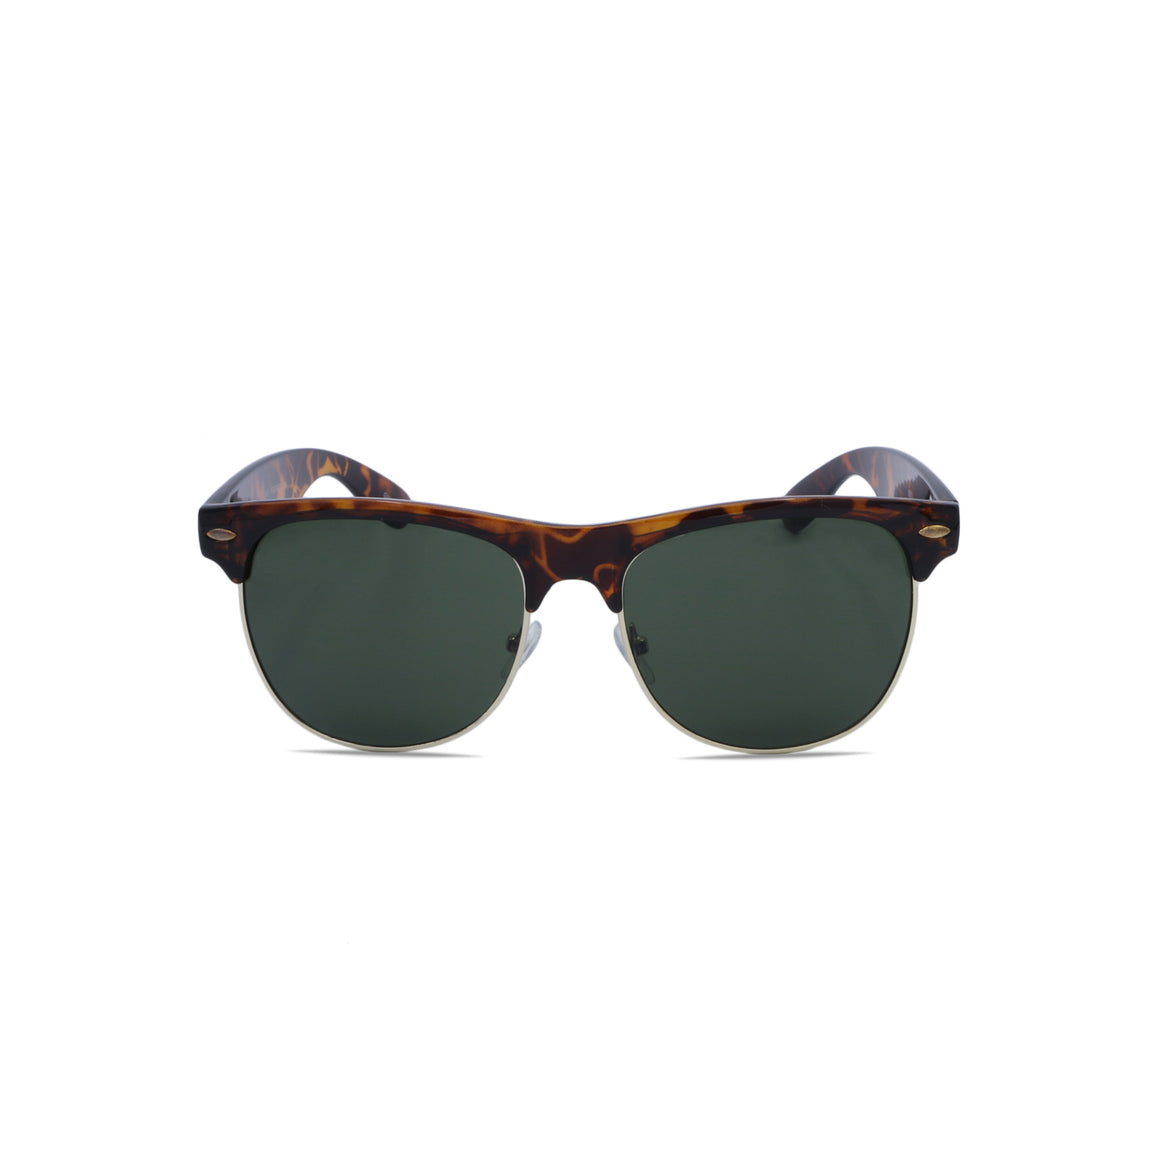 Club Master Sunglasses Square in Leopard Frame & Forest Green Lens